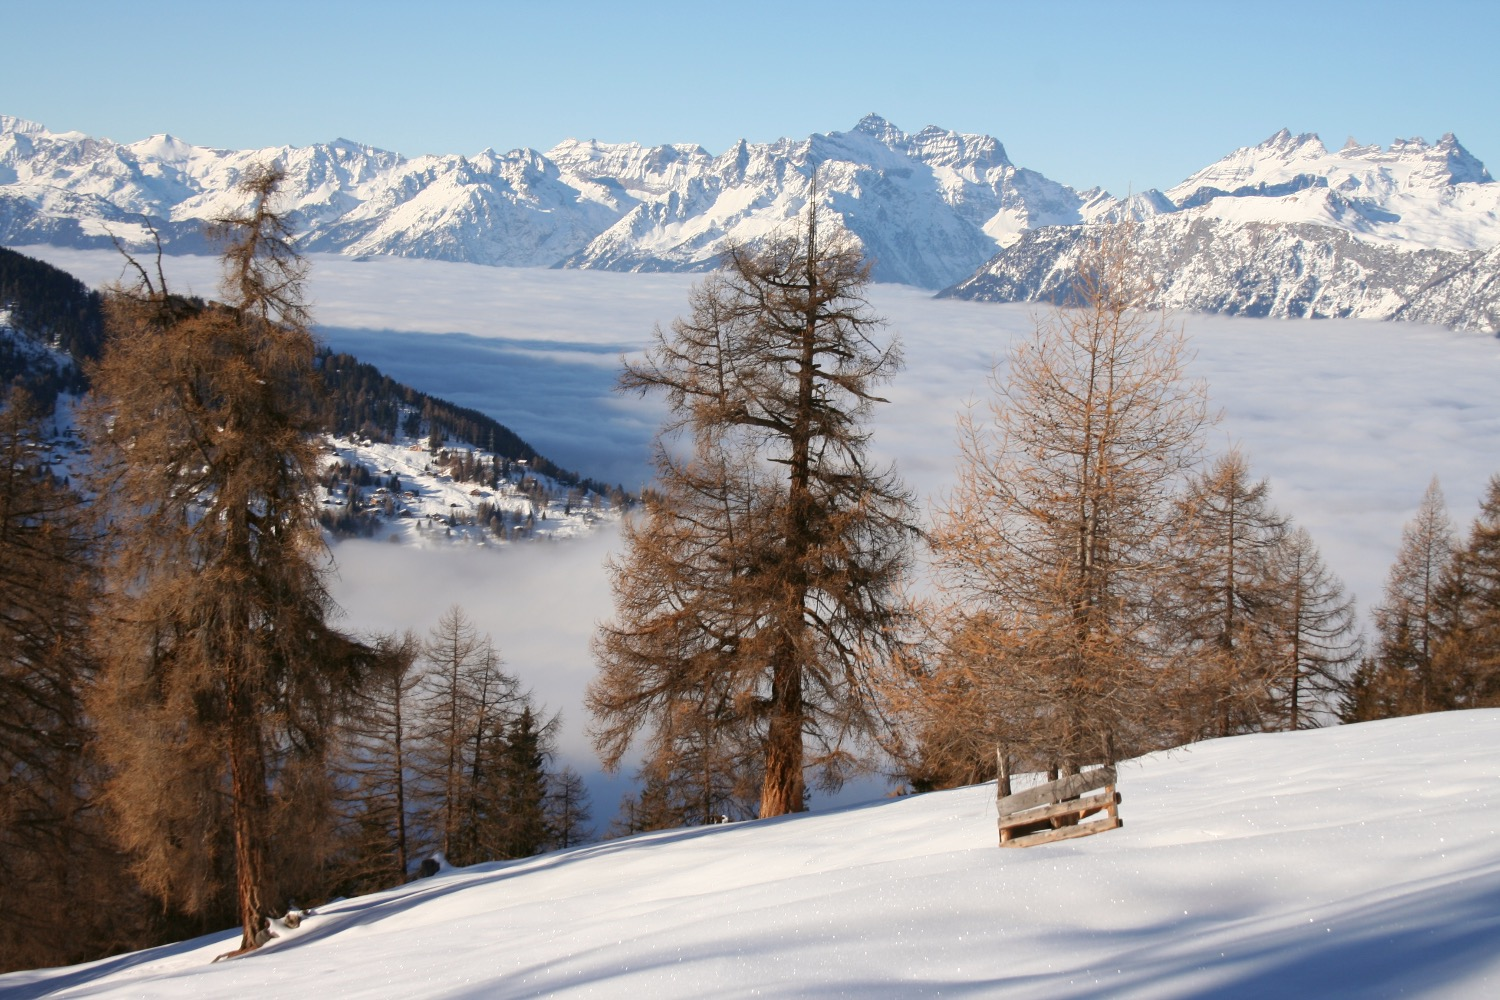 Prarion piste Nendaz above the clouds and the Rhone Valley